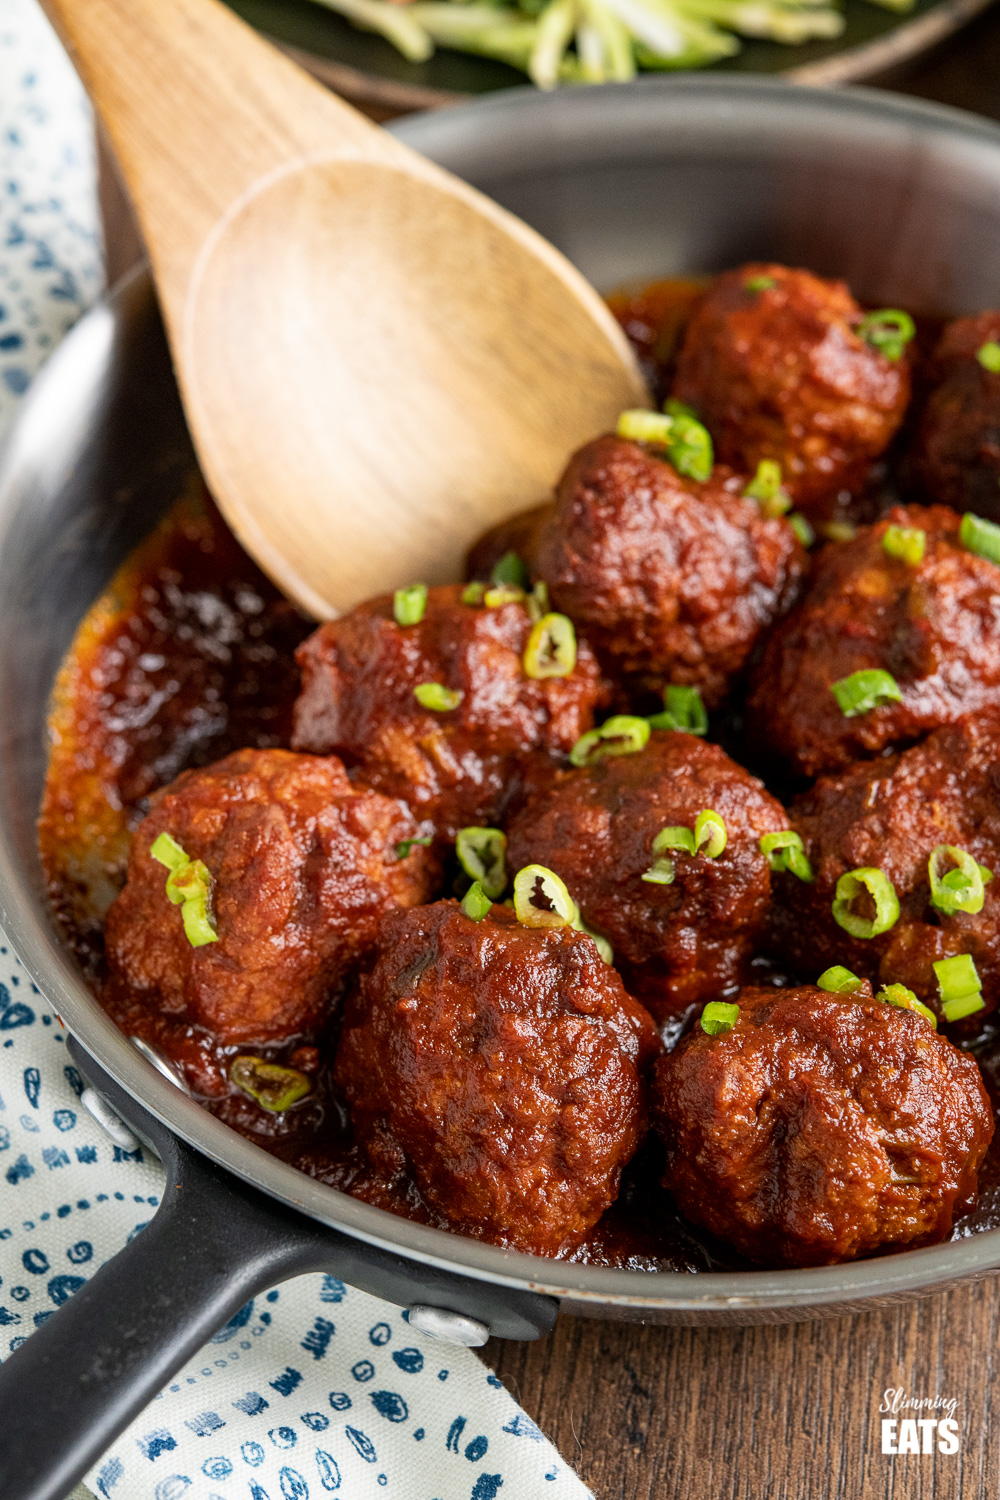 close up of honey and garlic chicken meatballs in a stainless steel frying pan with wooden spoon